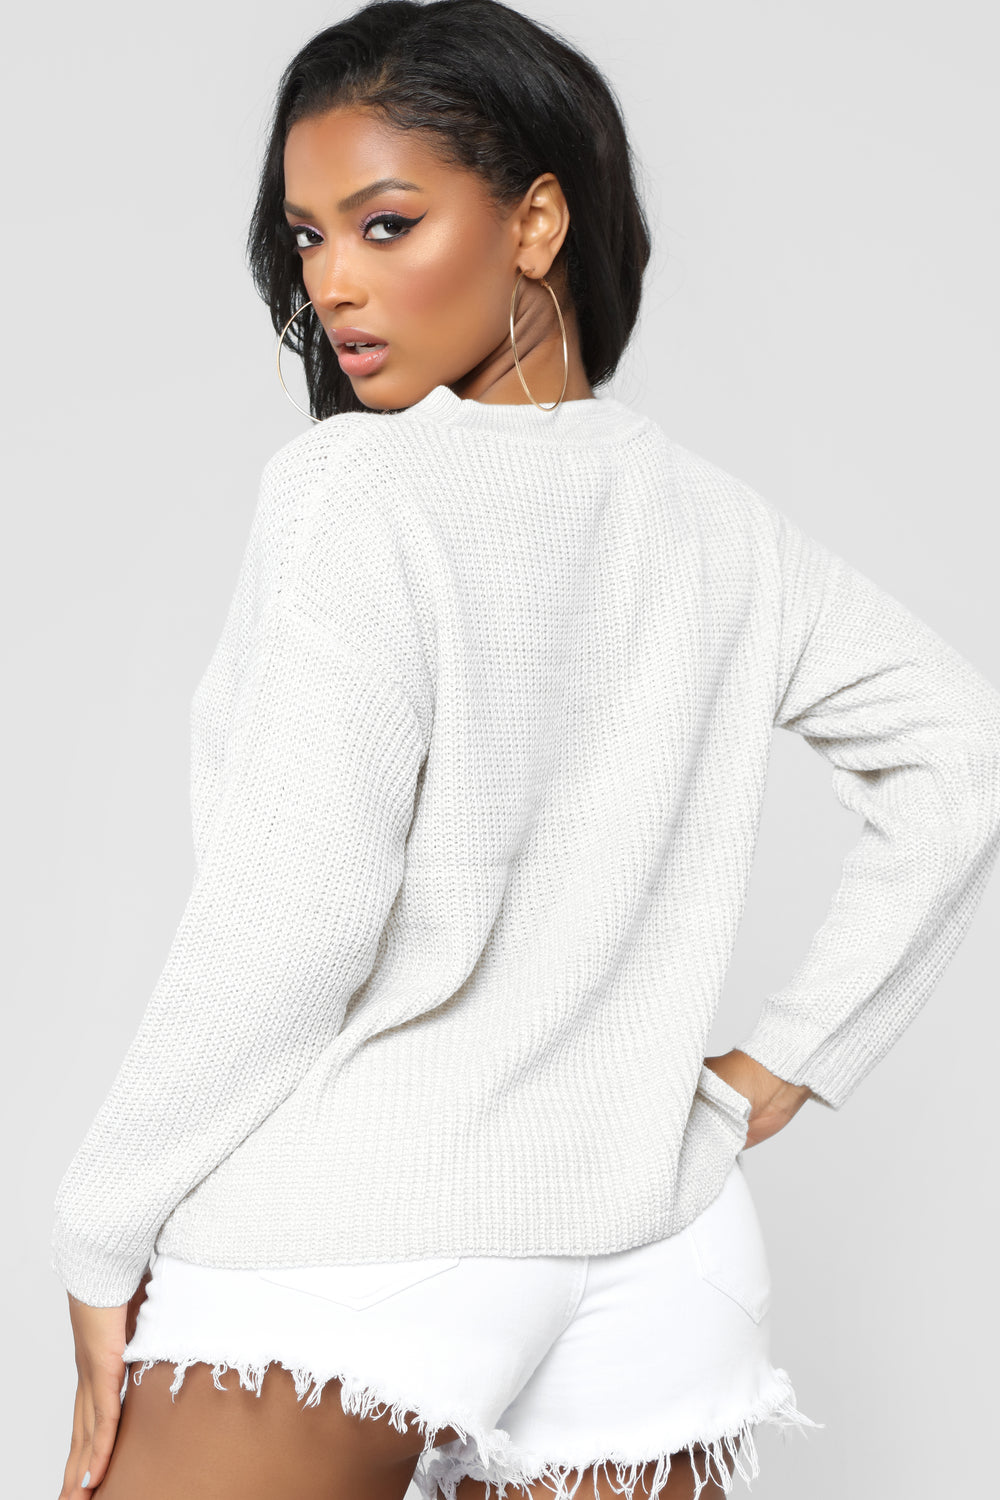 Do It Again Sweater - Silver